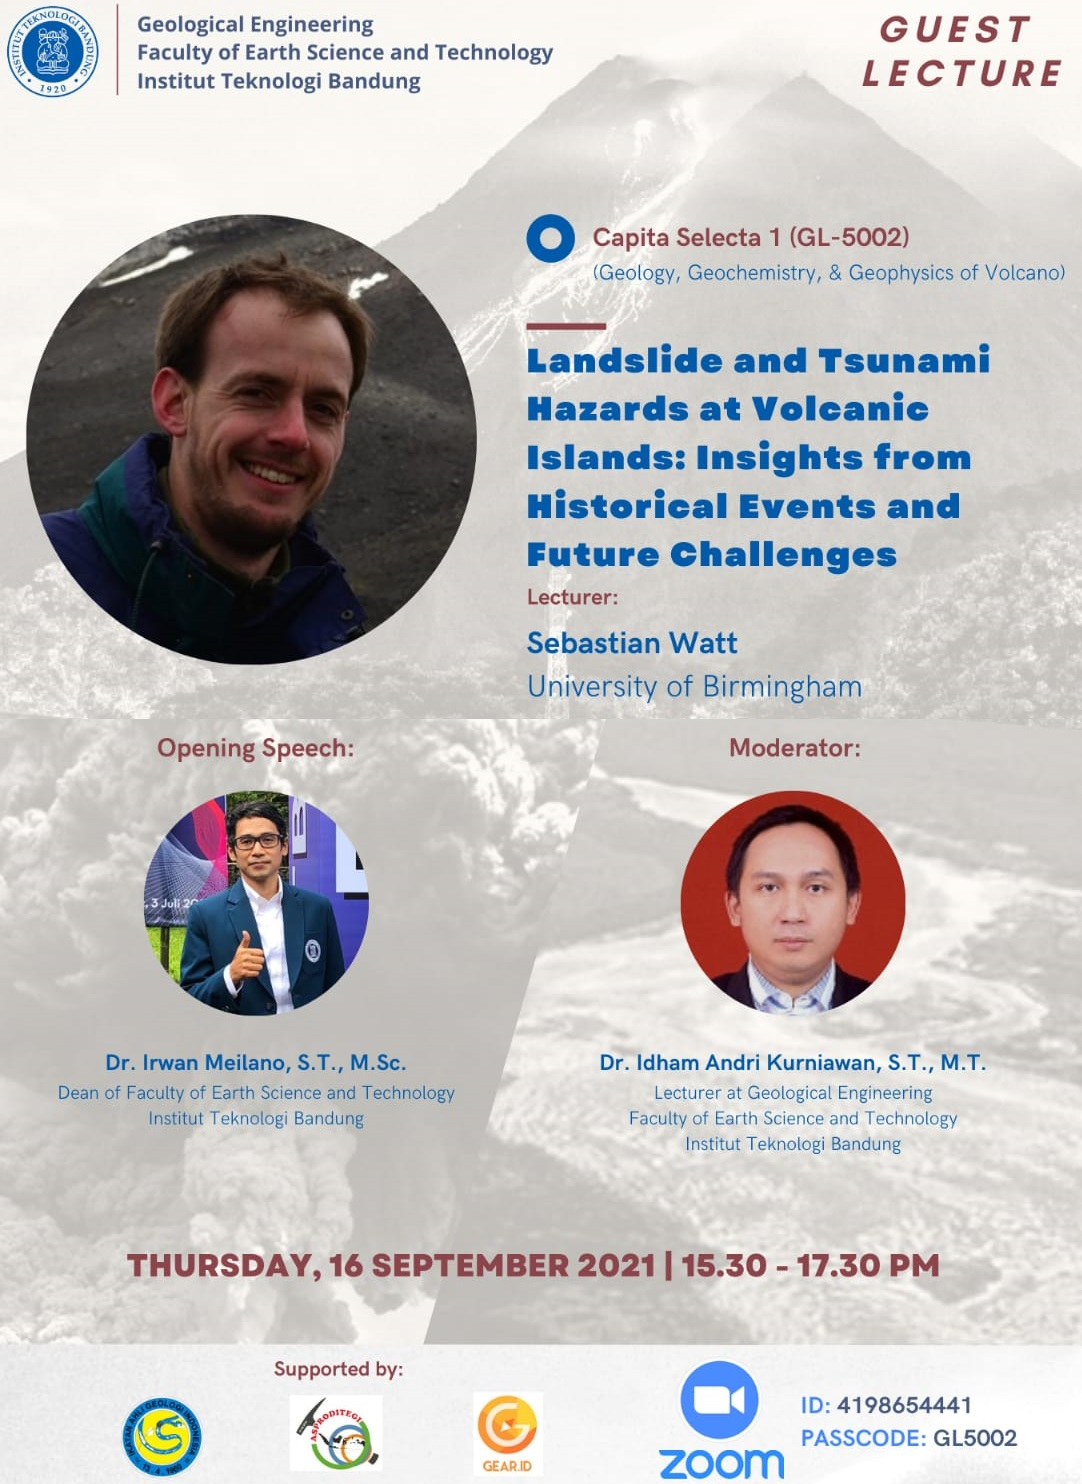 """GUEST LECTURE : Lecturer: Sebastian Watt -University of Birmingham-Topic: """"Landslide and Tsunami Hazards at Volcanic Islands: Insights from Historical Events and Future Challenges"""""""